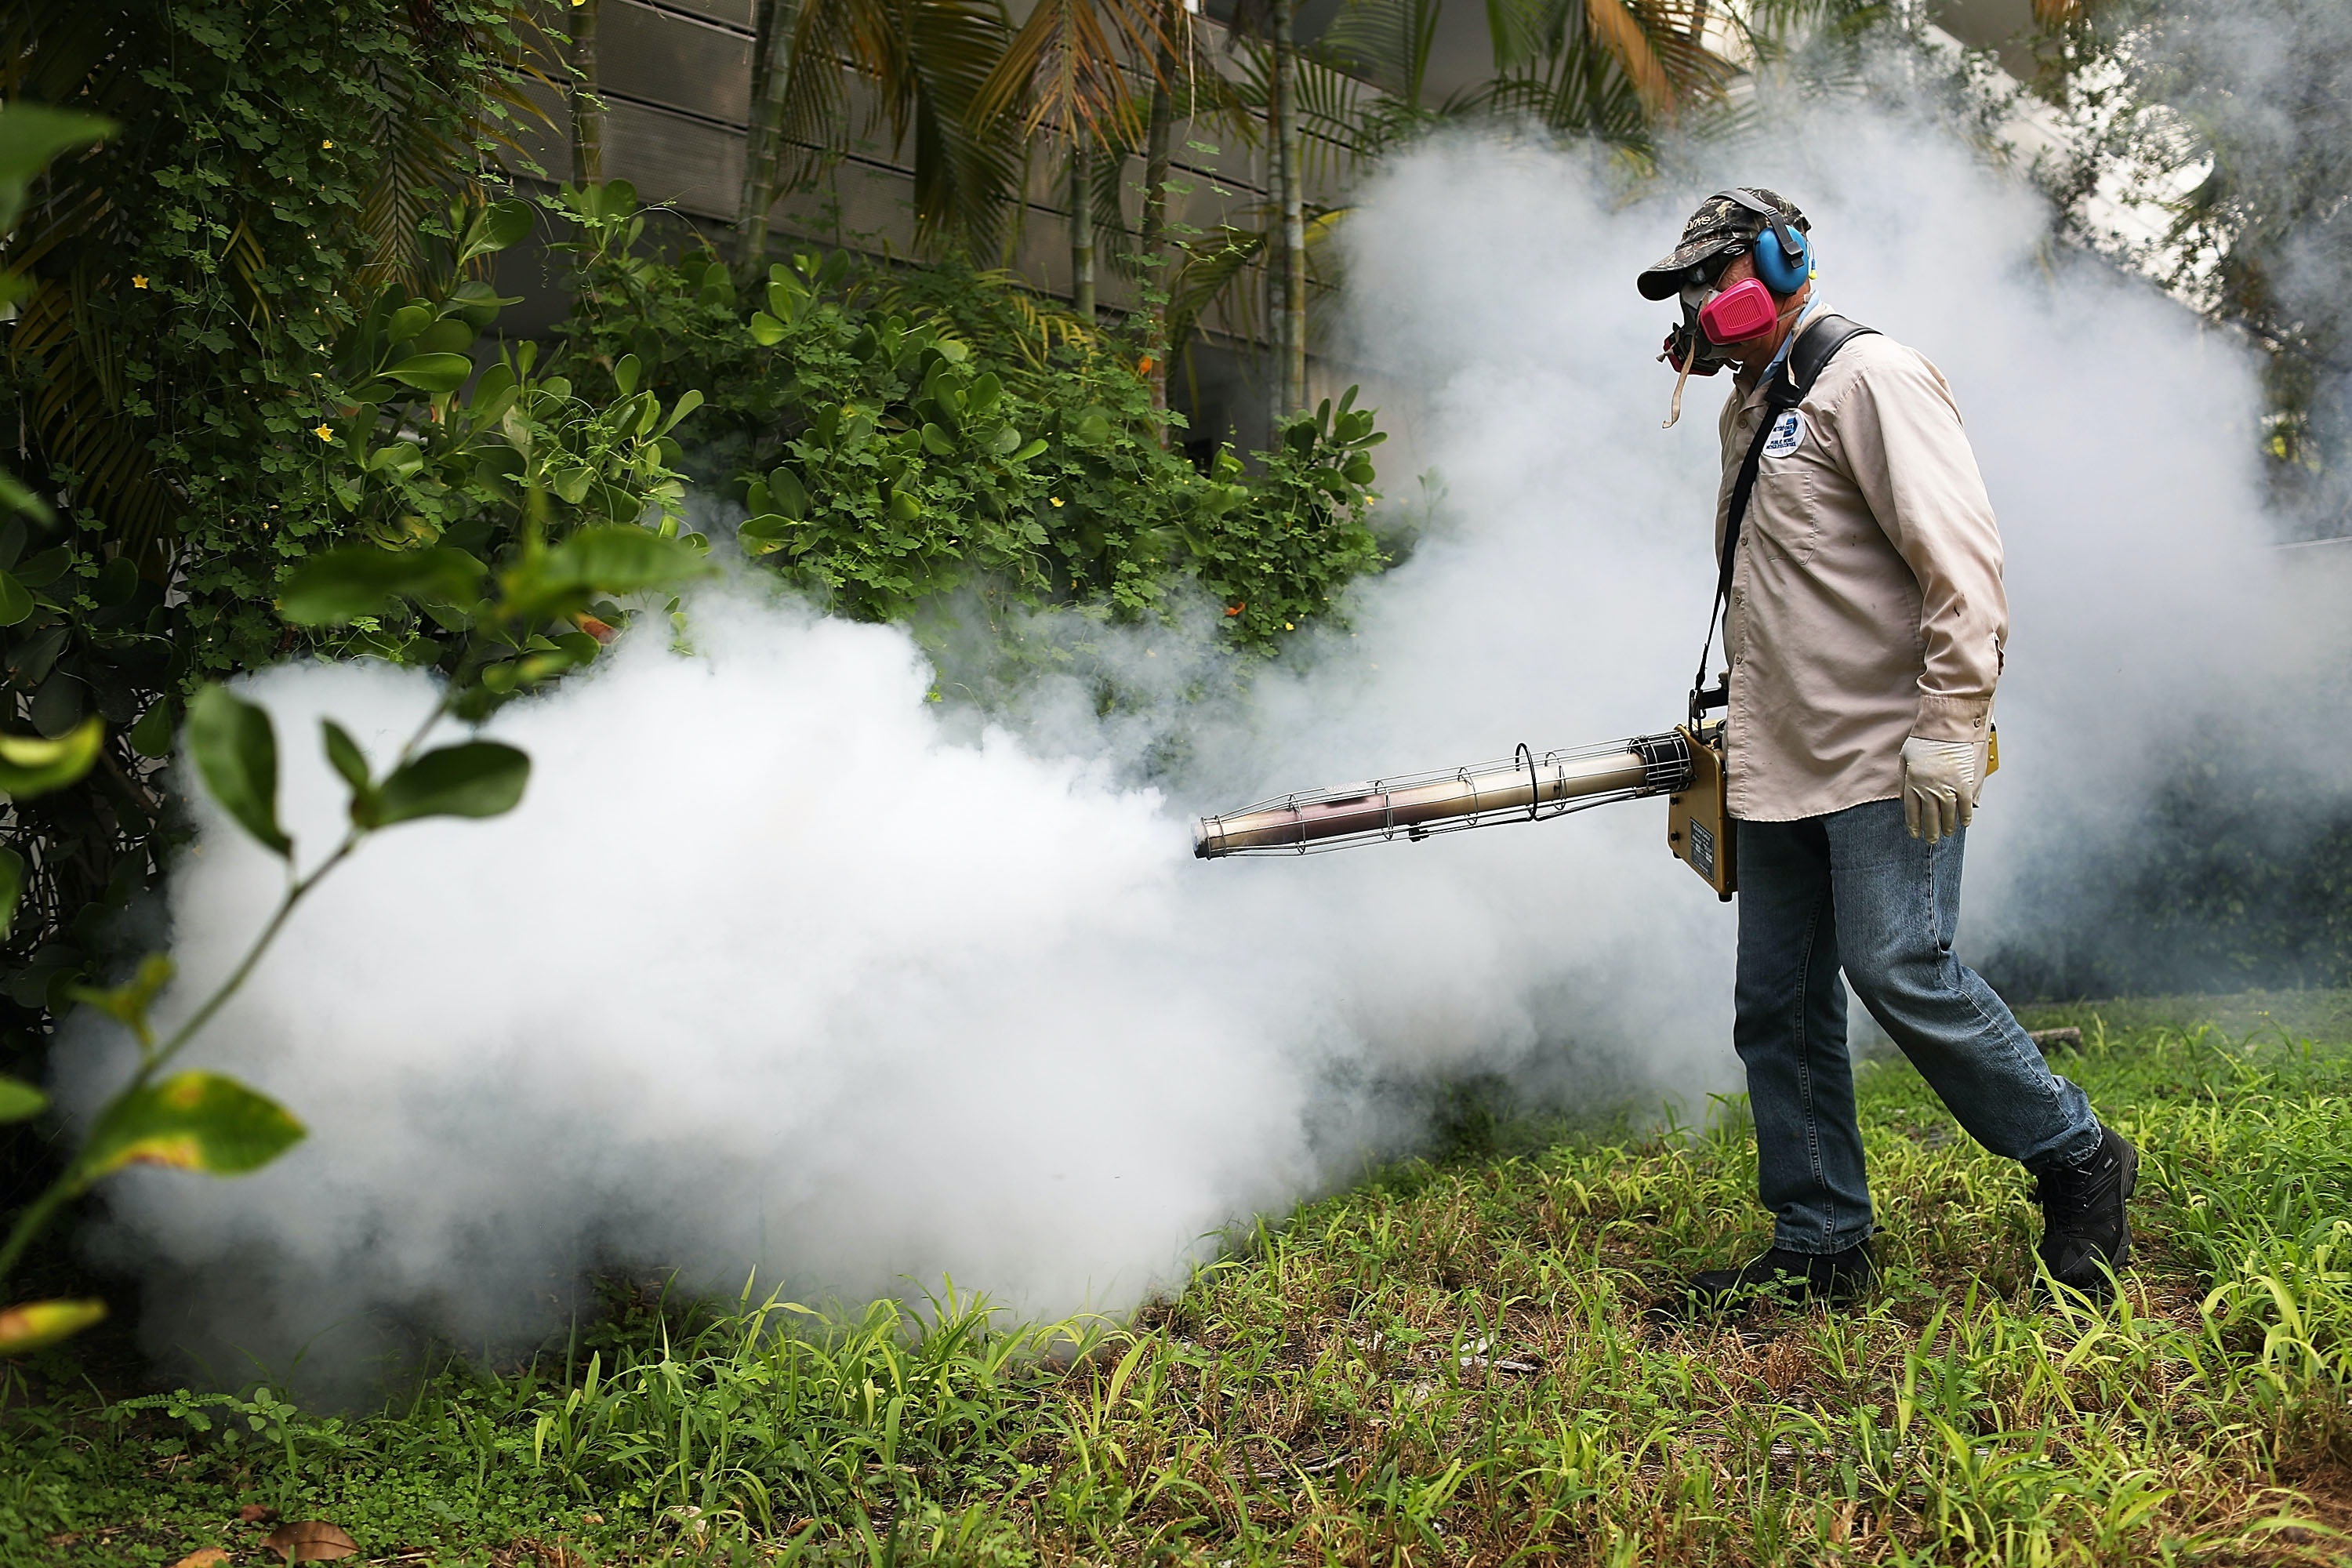 World Health Organization strengthens safe sex guidance when returning from Zika zones